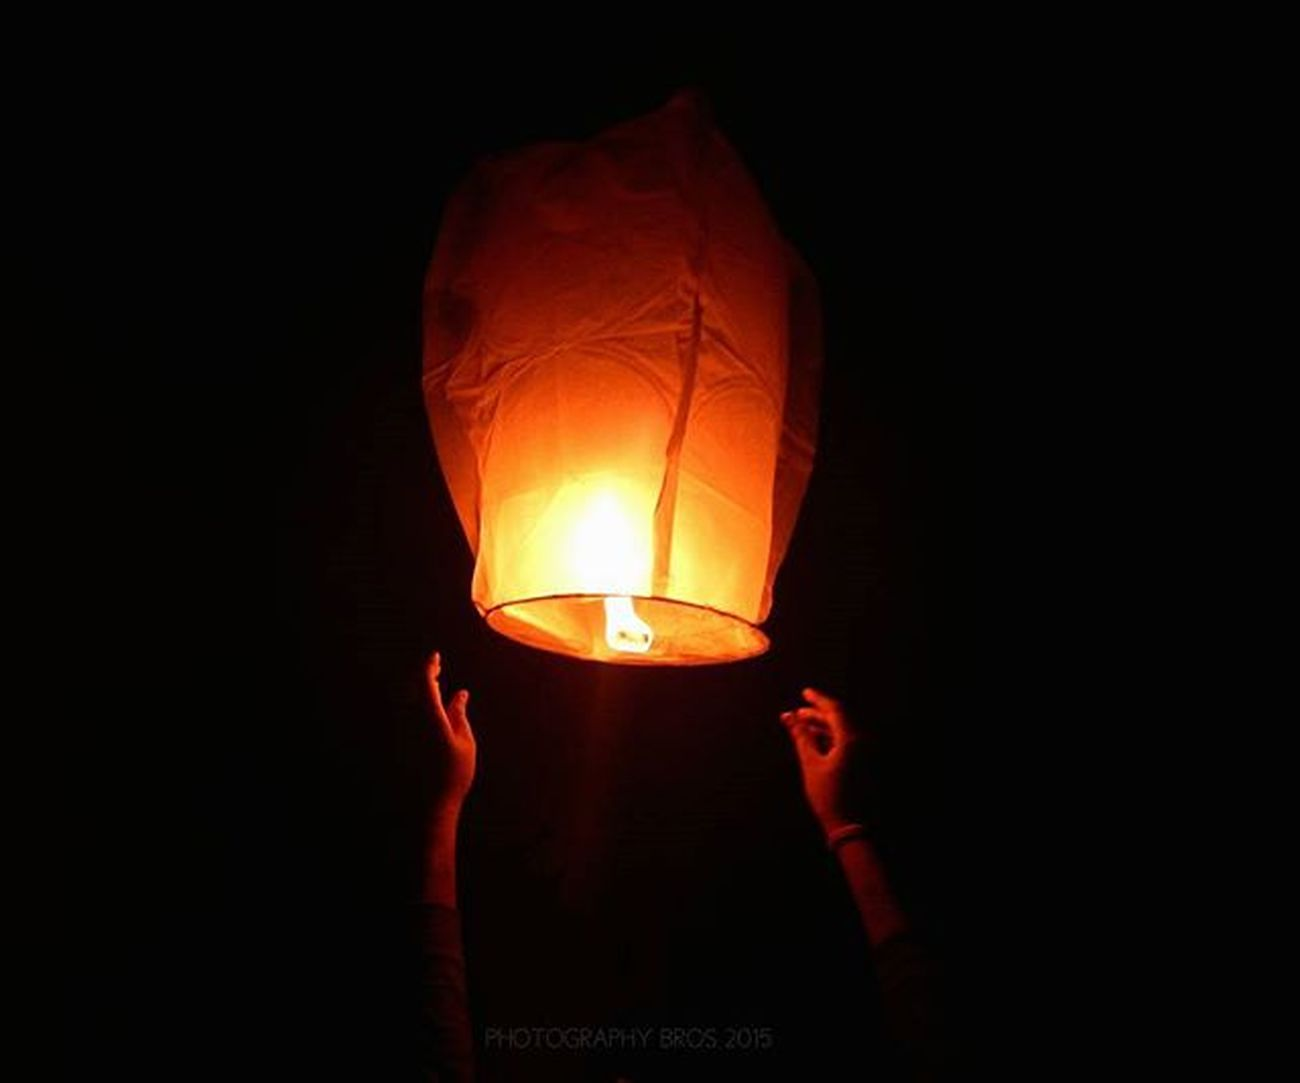 Diwali_click 💓 Bestofdiwali Throwback Lighters Nikonphotography Nikon_photographs L820 Nikontop Photography_love Photographyislife Instadaily Photographybros